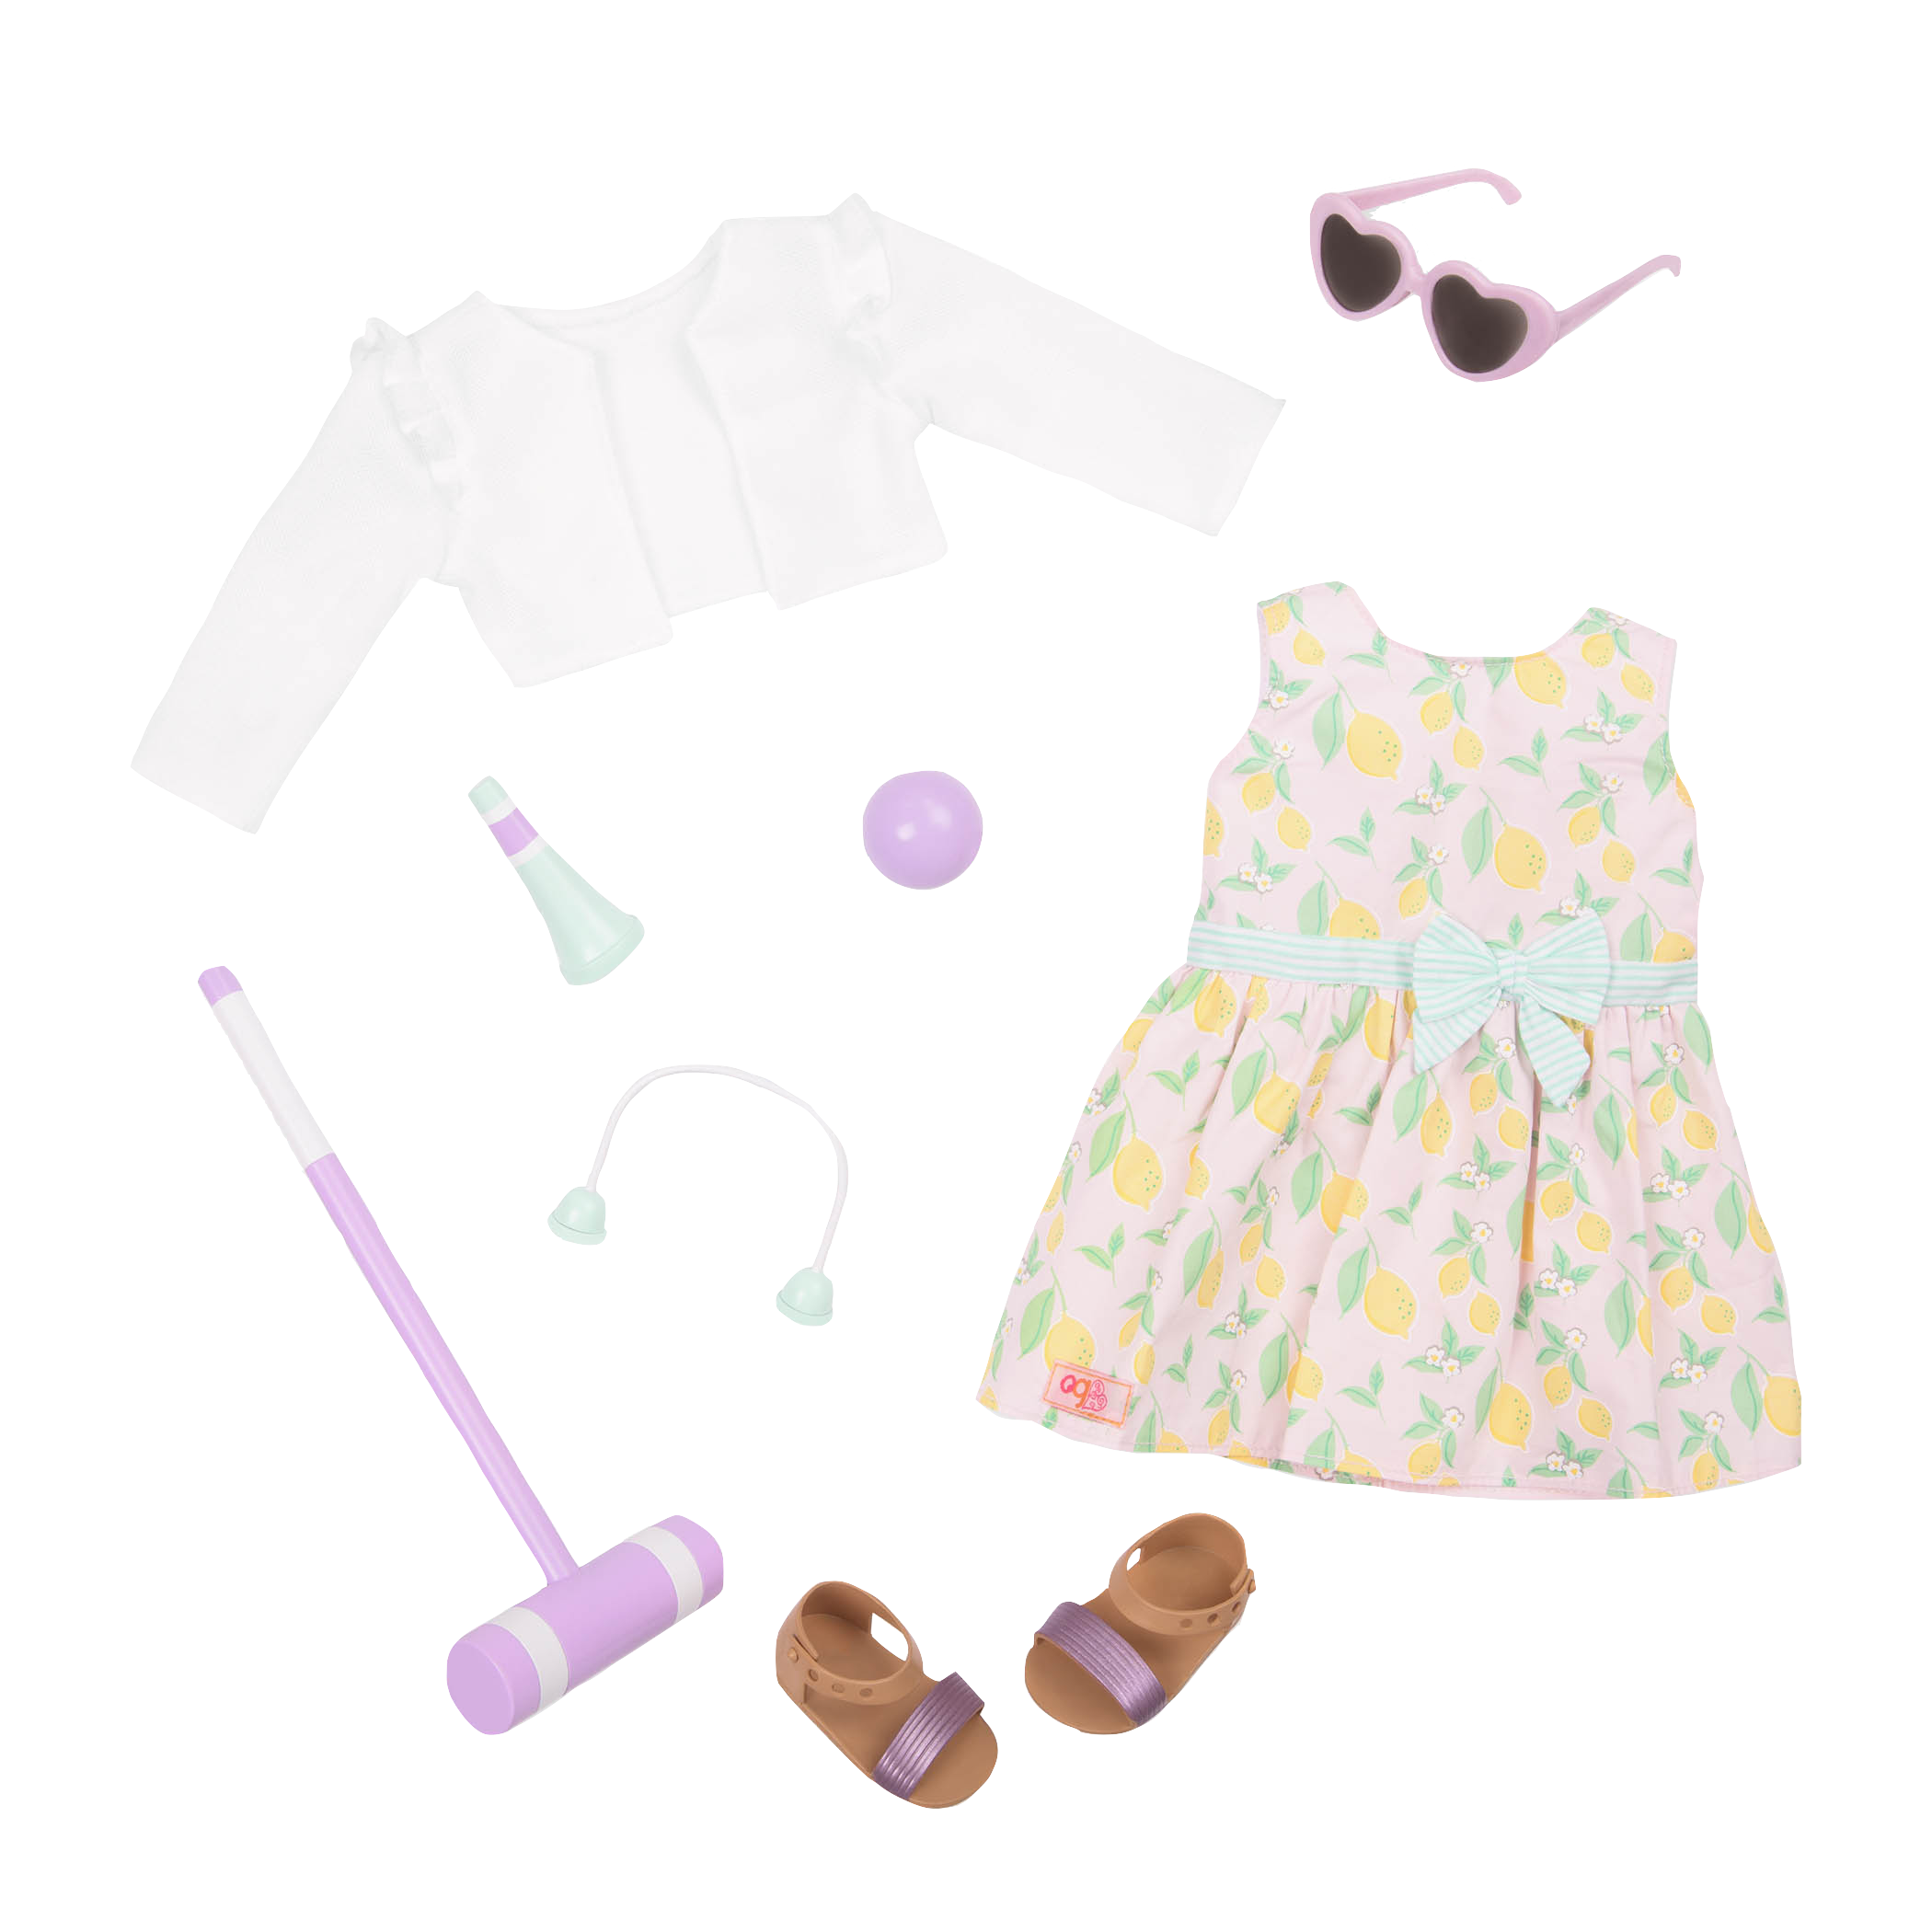 Croquet Play outfit all components